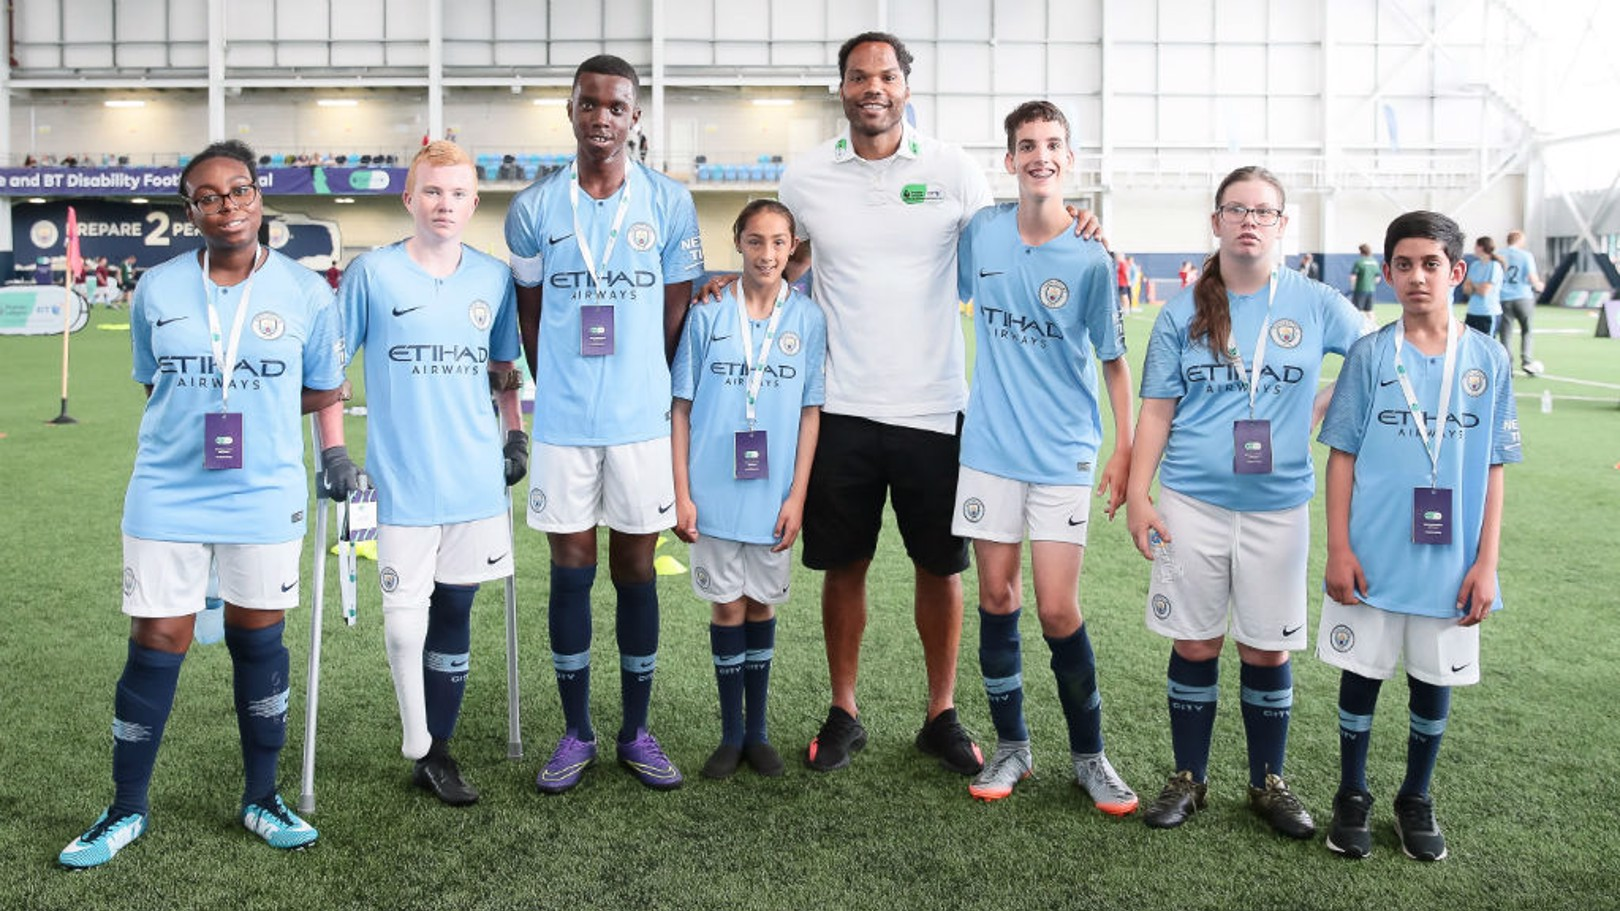 OCCASION TO REMEMBER: Joleon Lescott with youngsters at the Premier League and CITC Disability Football Festival